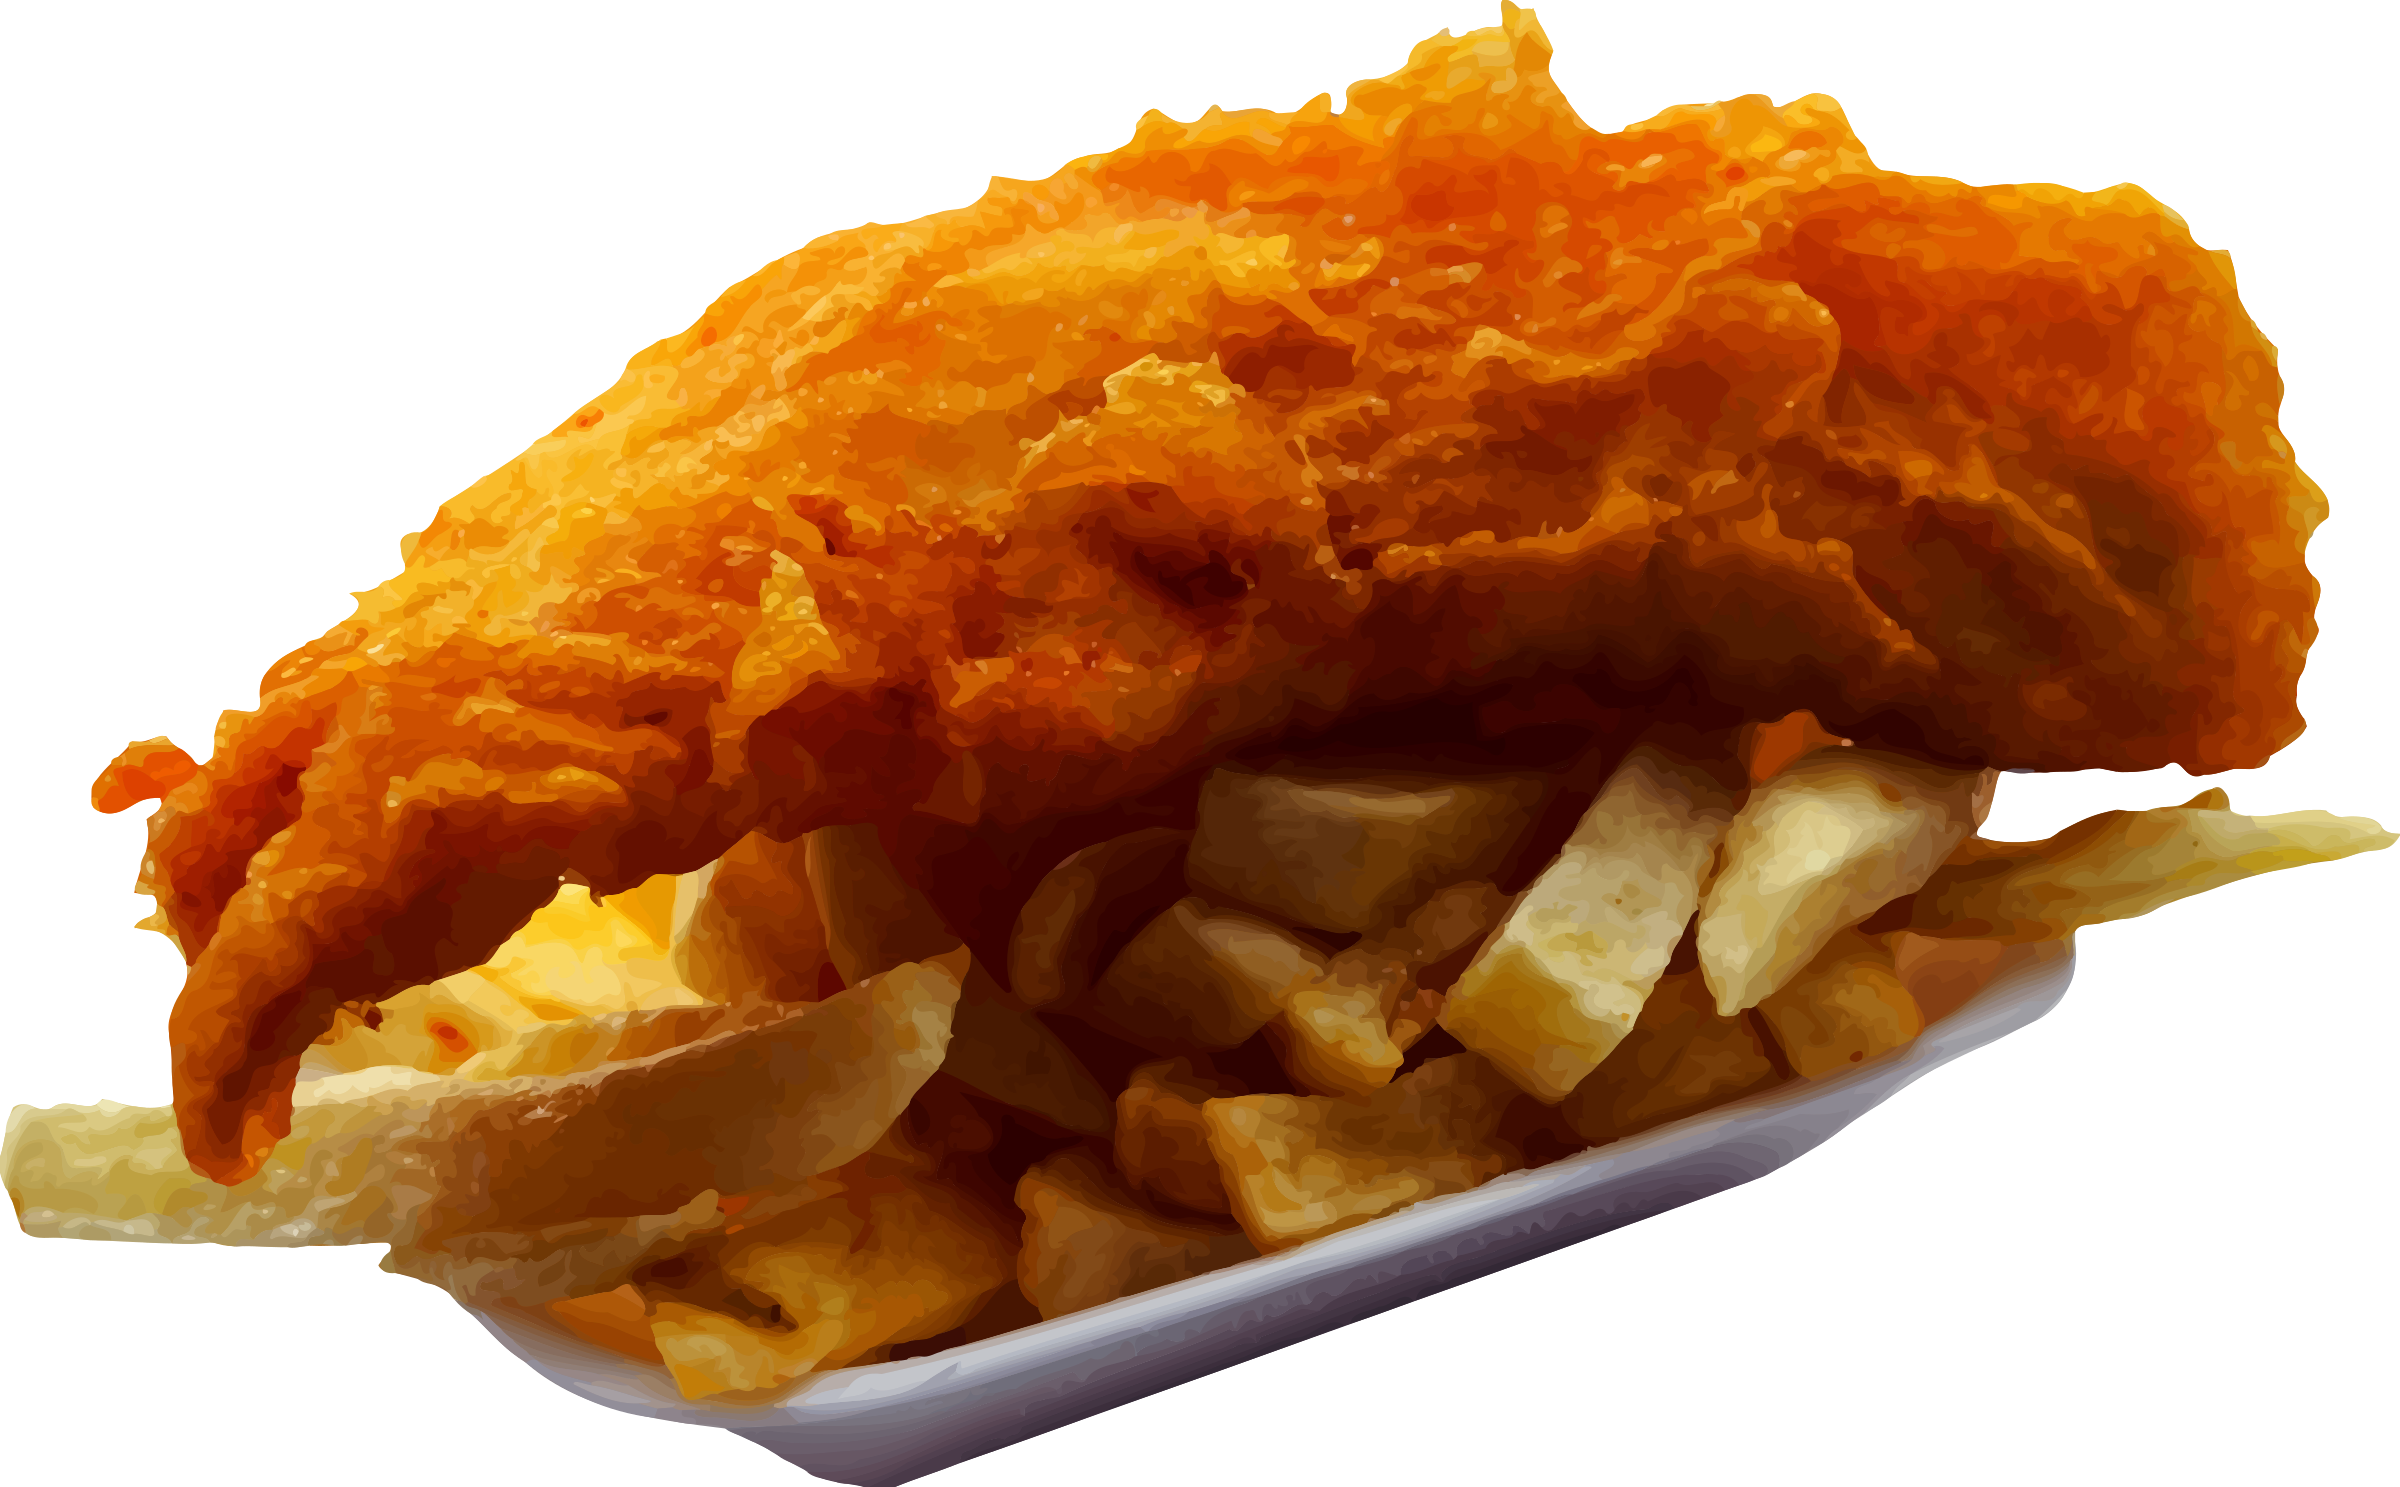 fish and chips clipart - photo #5